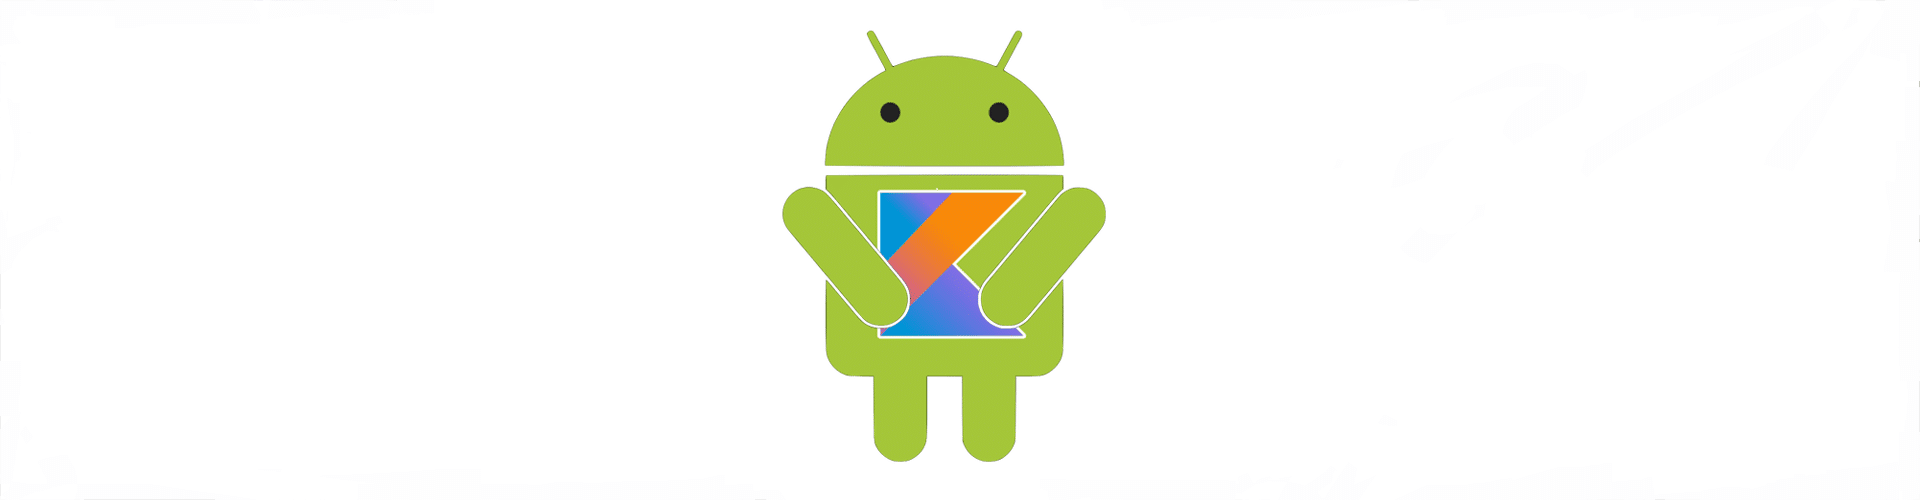 How to Setup a Kotlin Android Studio Project | Novatec